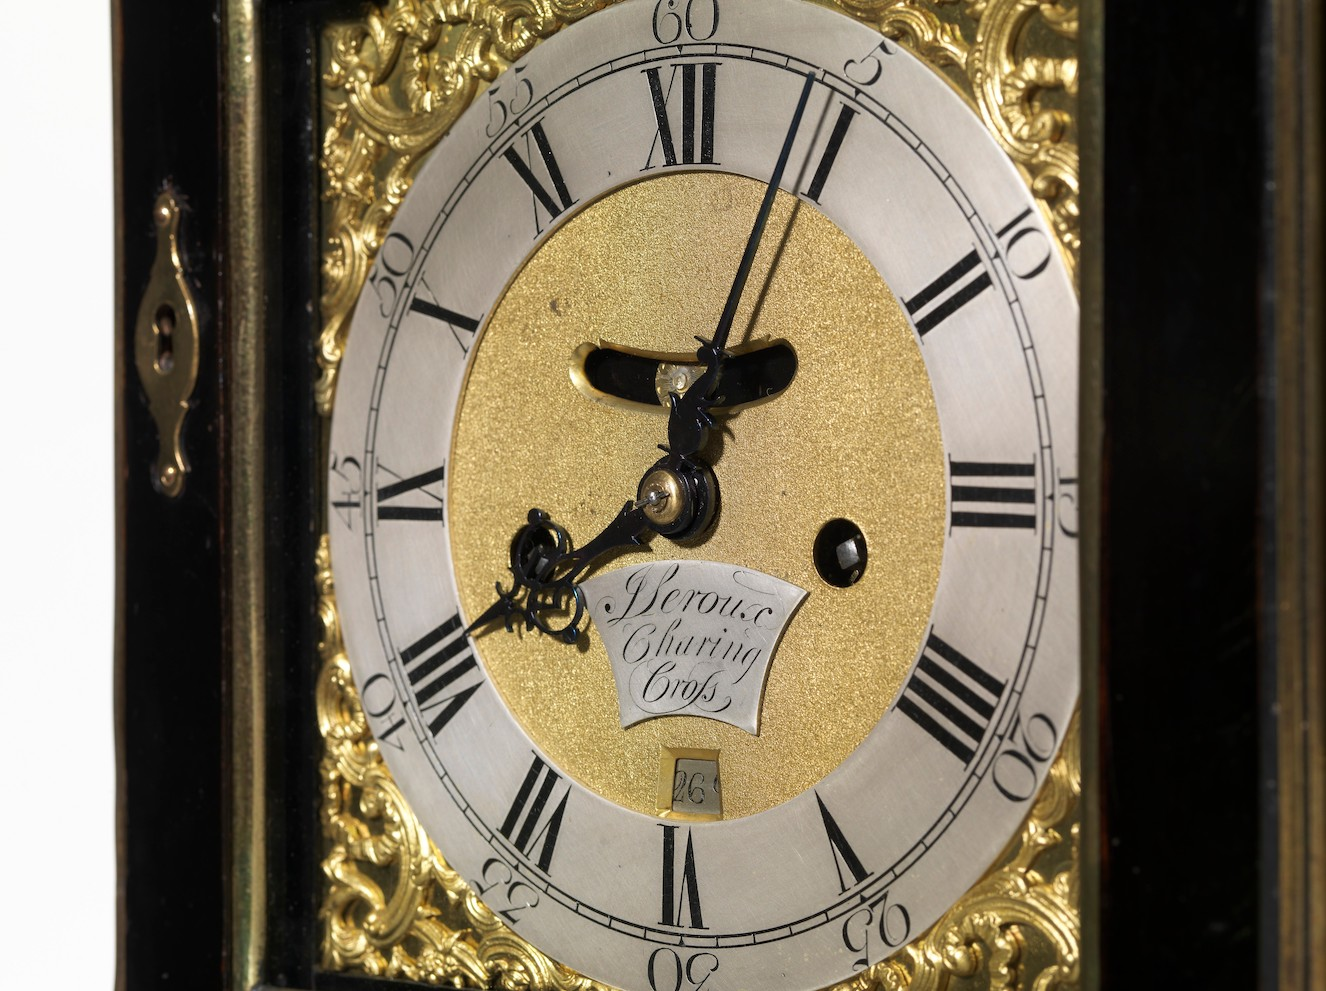 A clock face with Roman numerals and gold decoration.